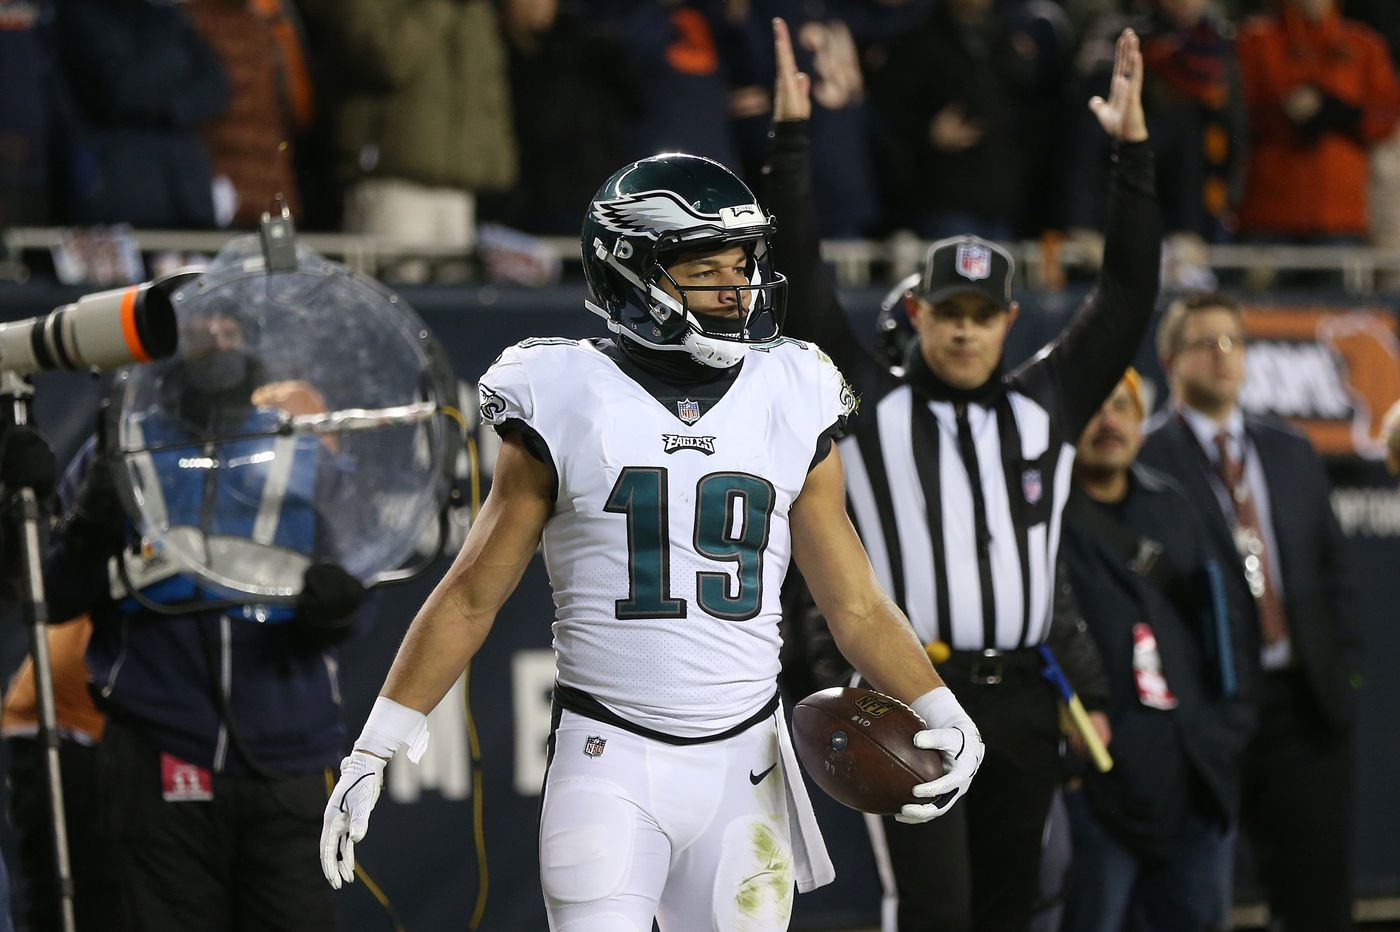 Call it the 'Chicago Special:' Nick Foles' touchdown pass to Golden Tate was perfect   Jeff McLane